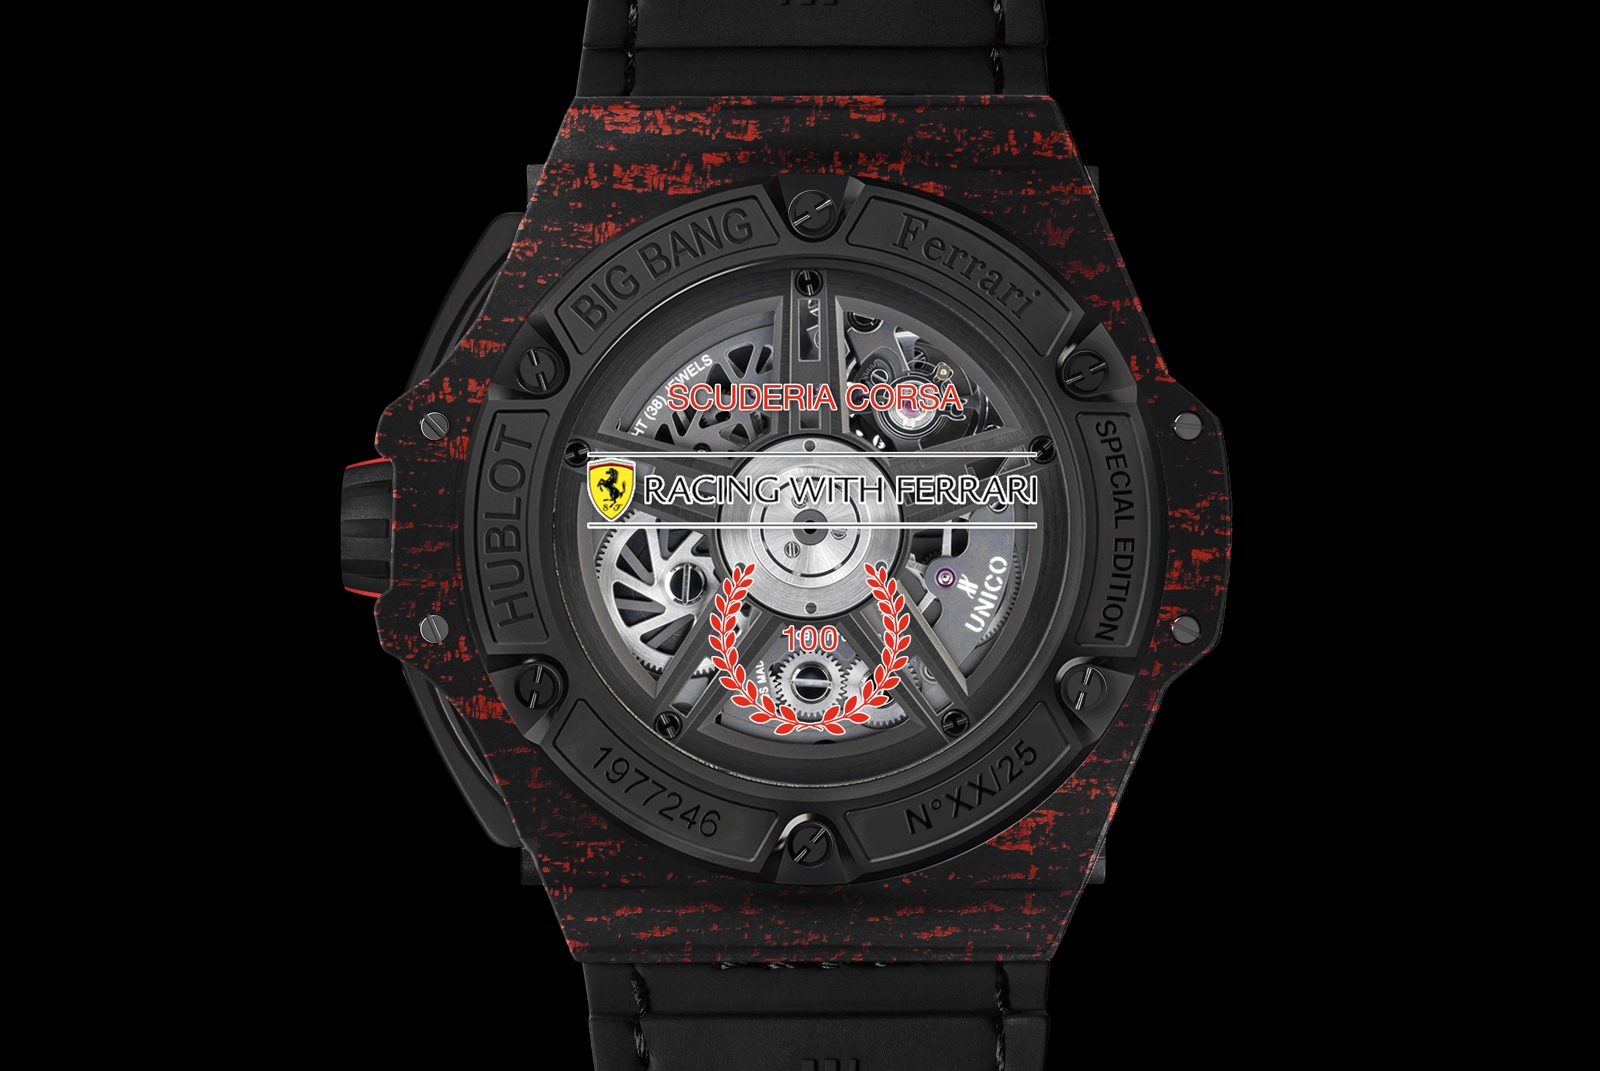 Hublot Big Bang Ferrari Scuderia Corsa - back